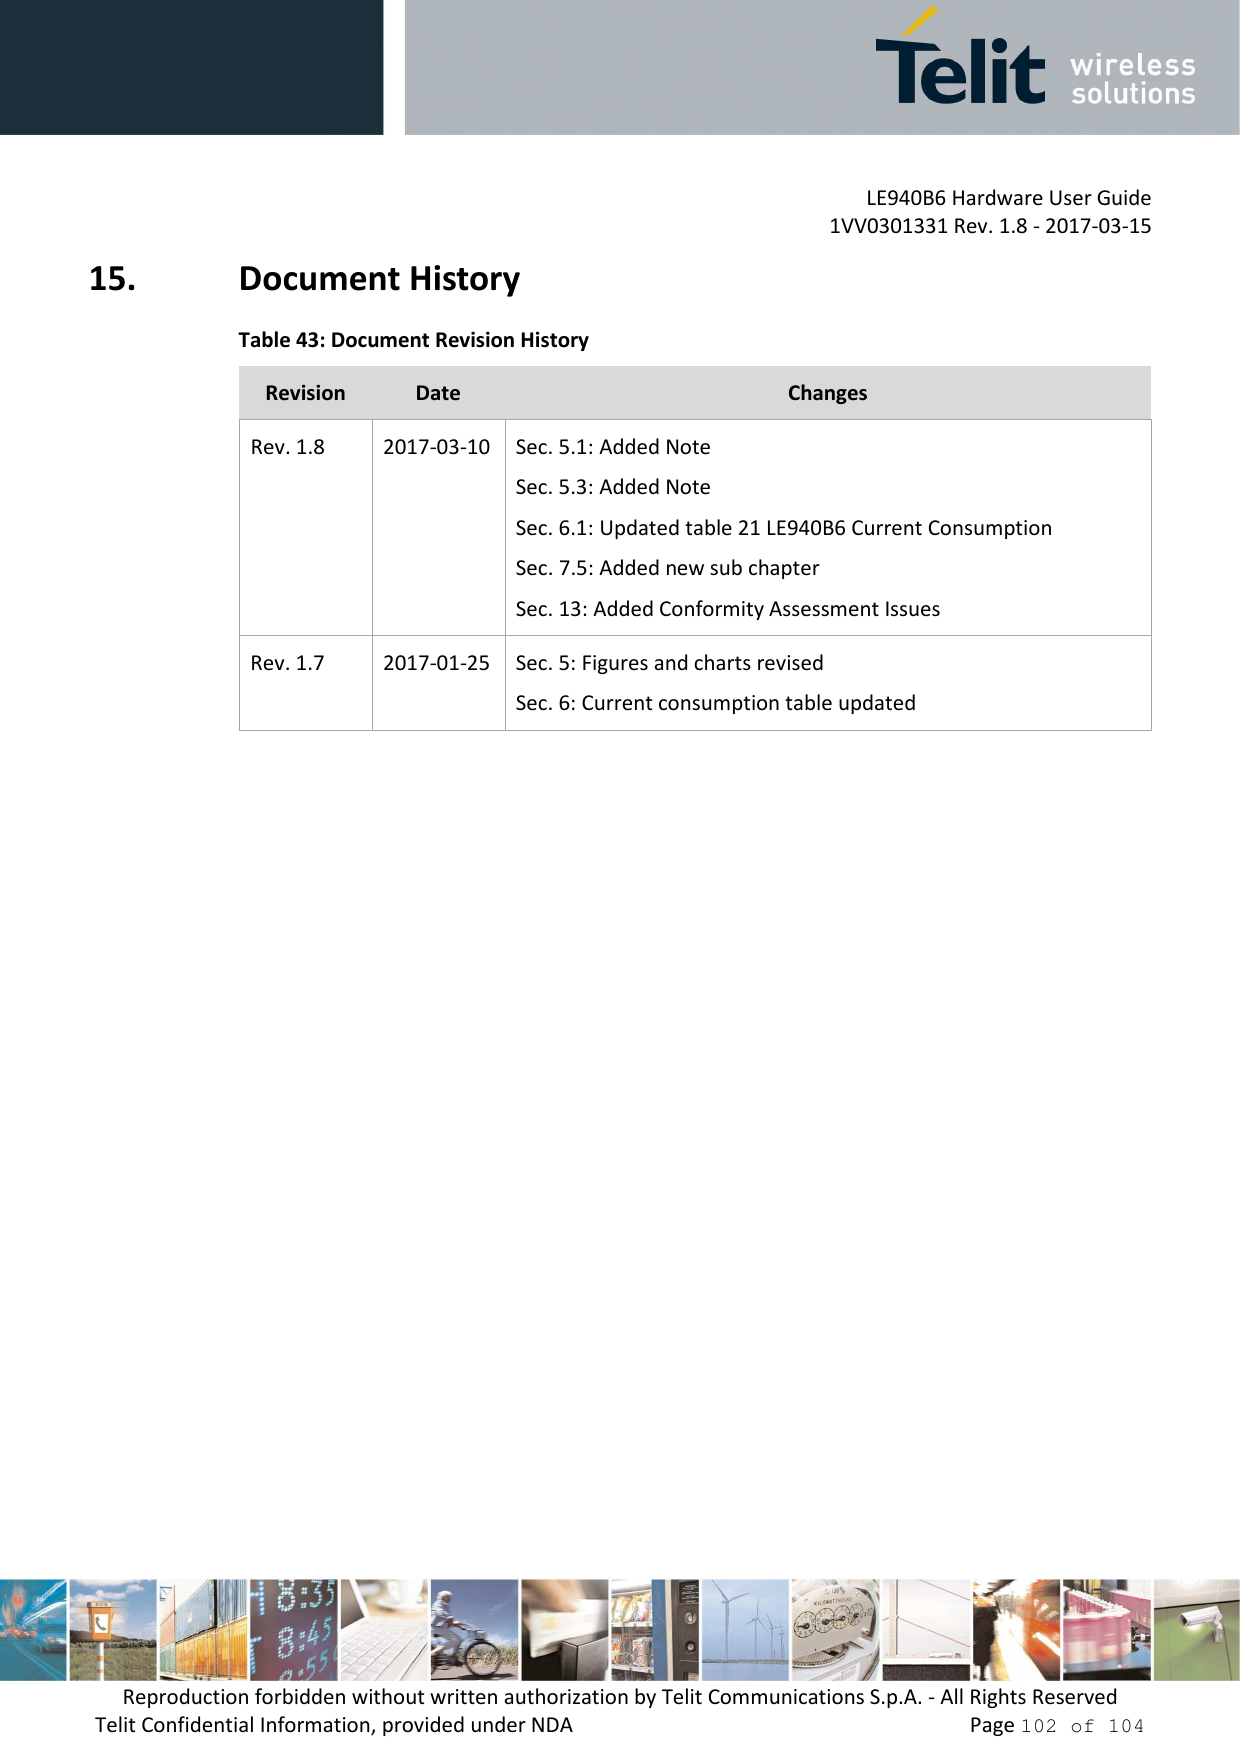 LE940B6 Hardware User Guide     1VV0301331 Rev. 1.8 - 2017-03-15 Reproduction forbidden without written authorization by Telit Communications S.p.A. - All Rights Reserved Telit Confidential Information, provided under NDA                 Page 102 of 104 15. Document History Table 43: Document Revision History Revision  Date  Changes Rev. 1.8  2017-03-10 Sec. 5.1: Added Note Sec. 5.3: Added Note Sec. 6.1: Updated table 21 LE940B6 Current Consumption Sec. 7.5: Added new sub chapter Sec. 13: Added Conformity Assessment Issues Rev. 1.7  2017-01-25 Sec. 5: Figures and charts revised Sec. 6: Current consumption table updated